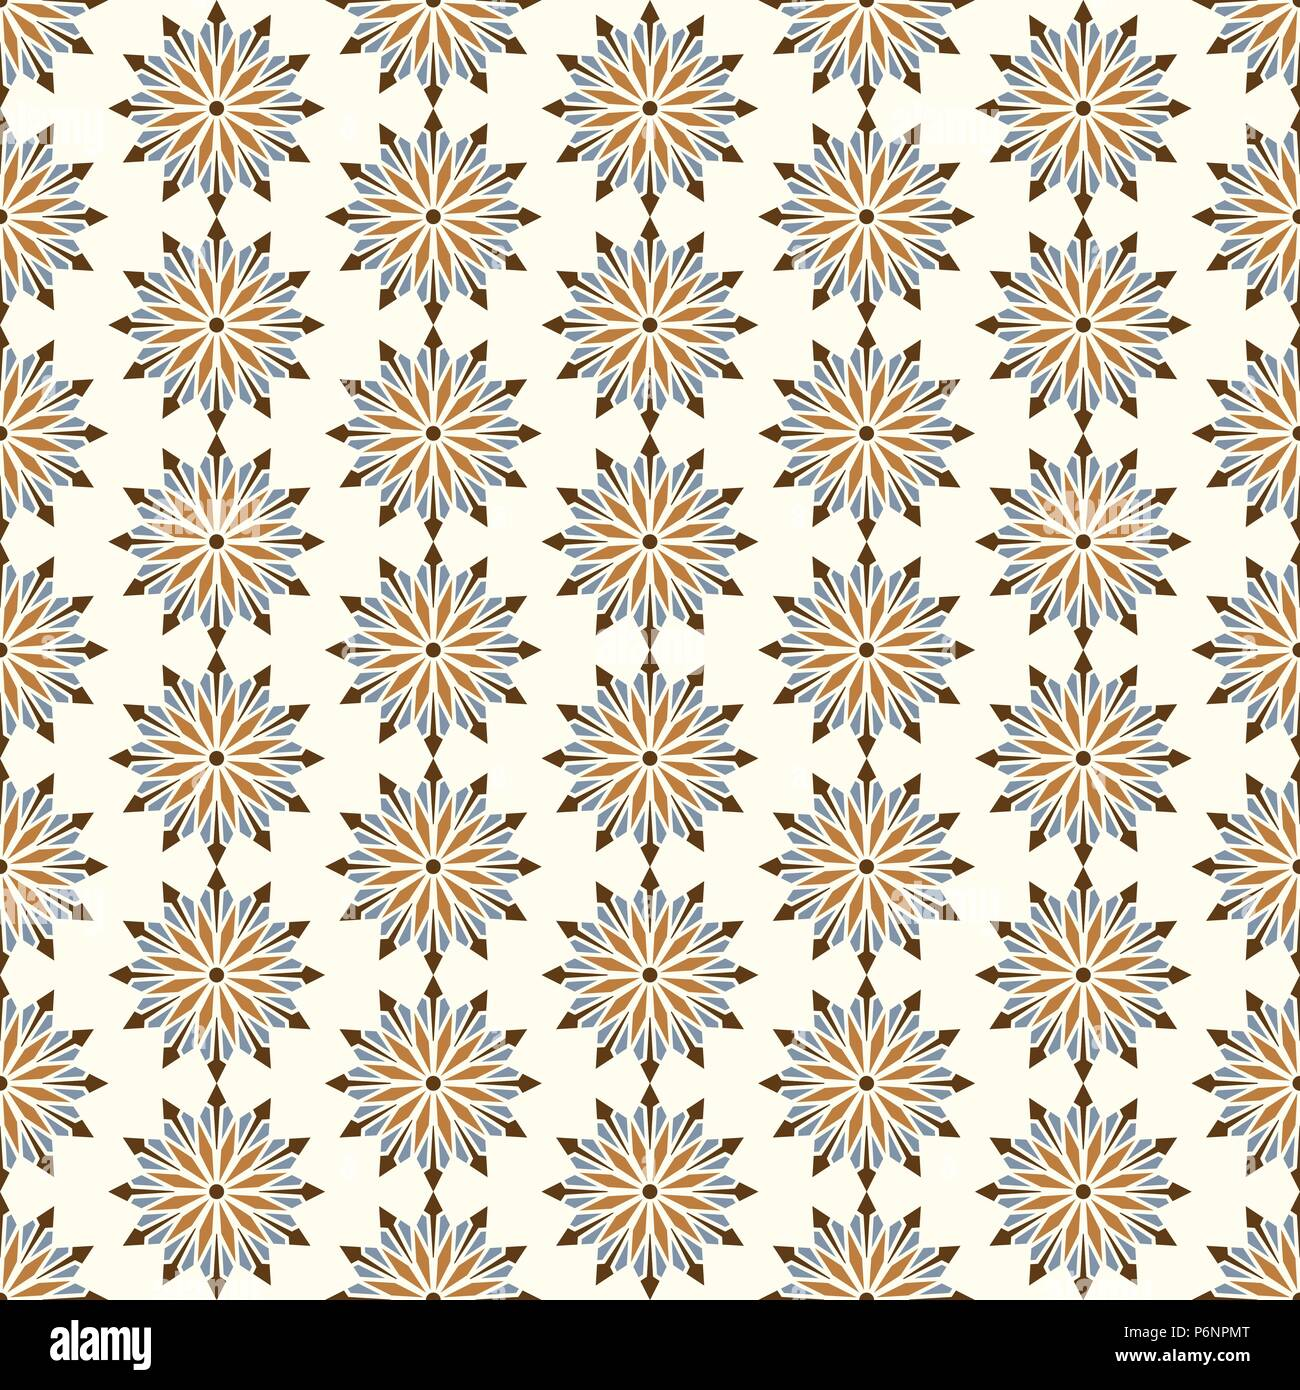 Brown modern flower and arrow and rhomboid shape seamless pattern. Graphic bloom pattern for fashionable or classic design - Stock Vector